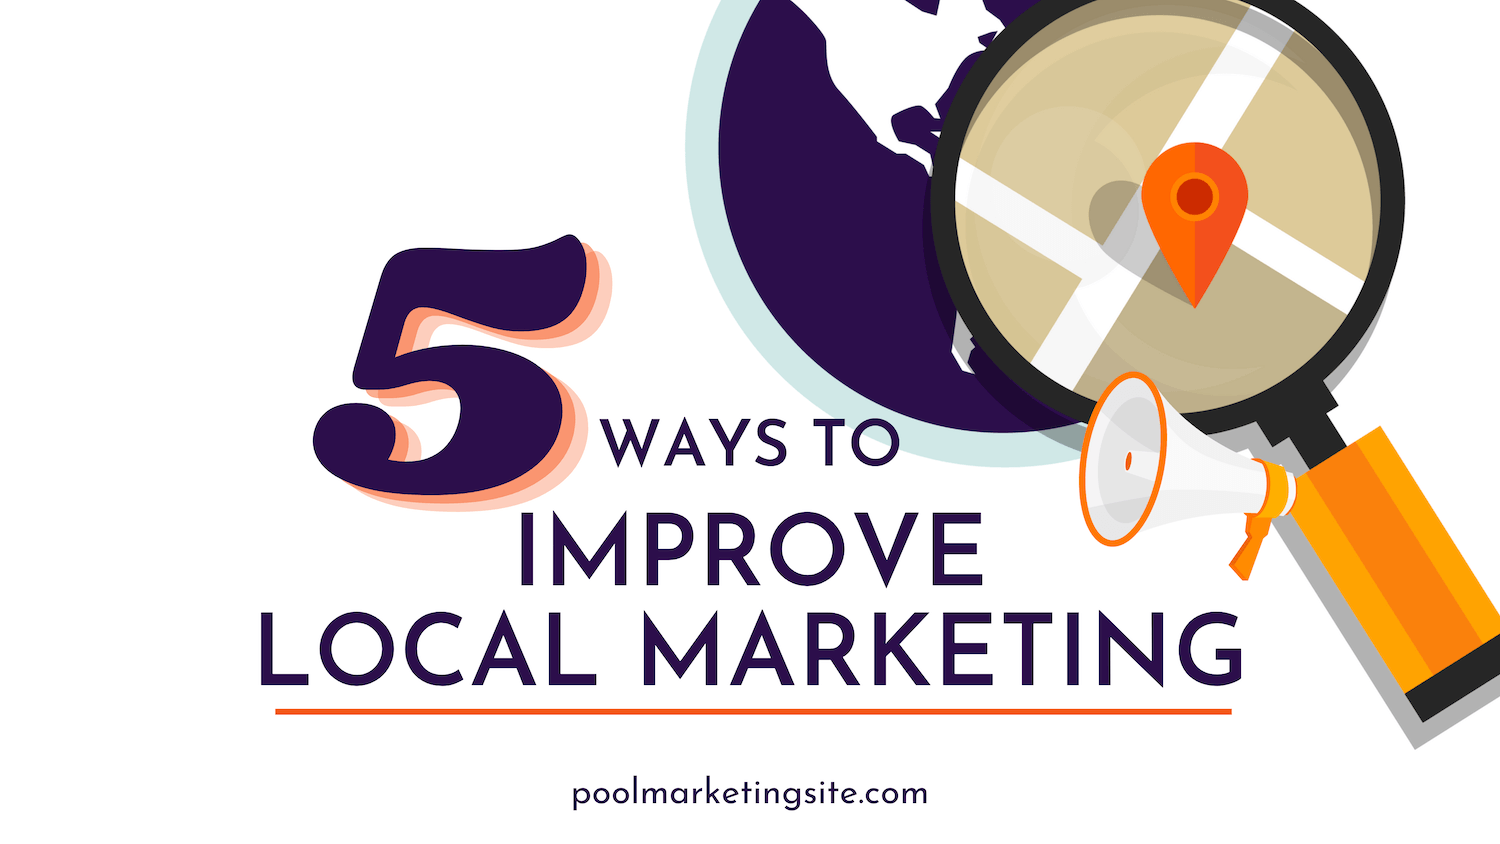 5 Ways to Improve Local Marketing